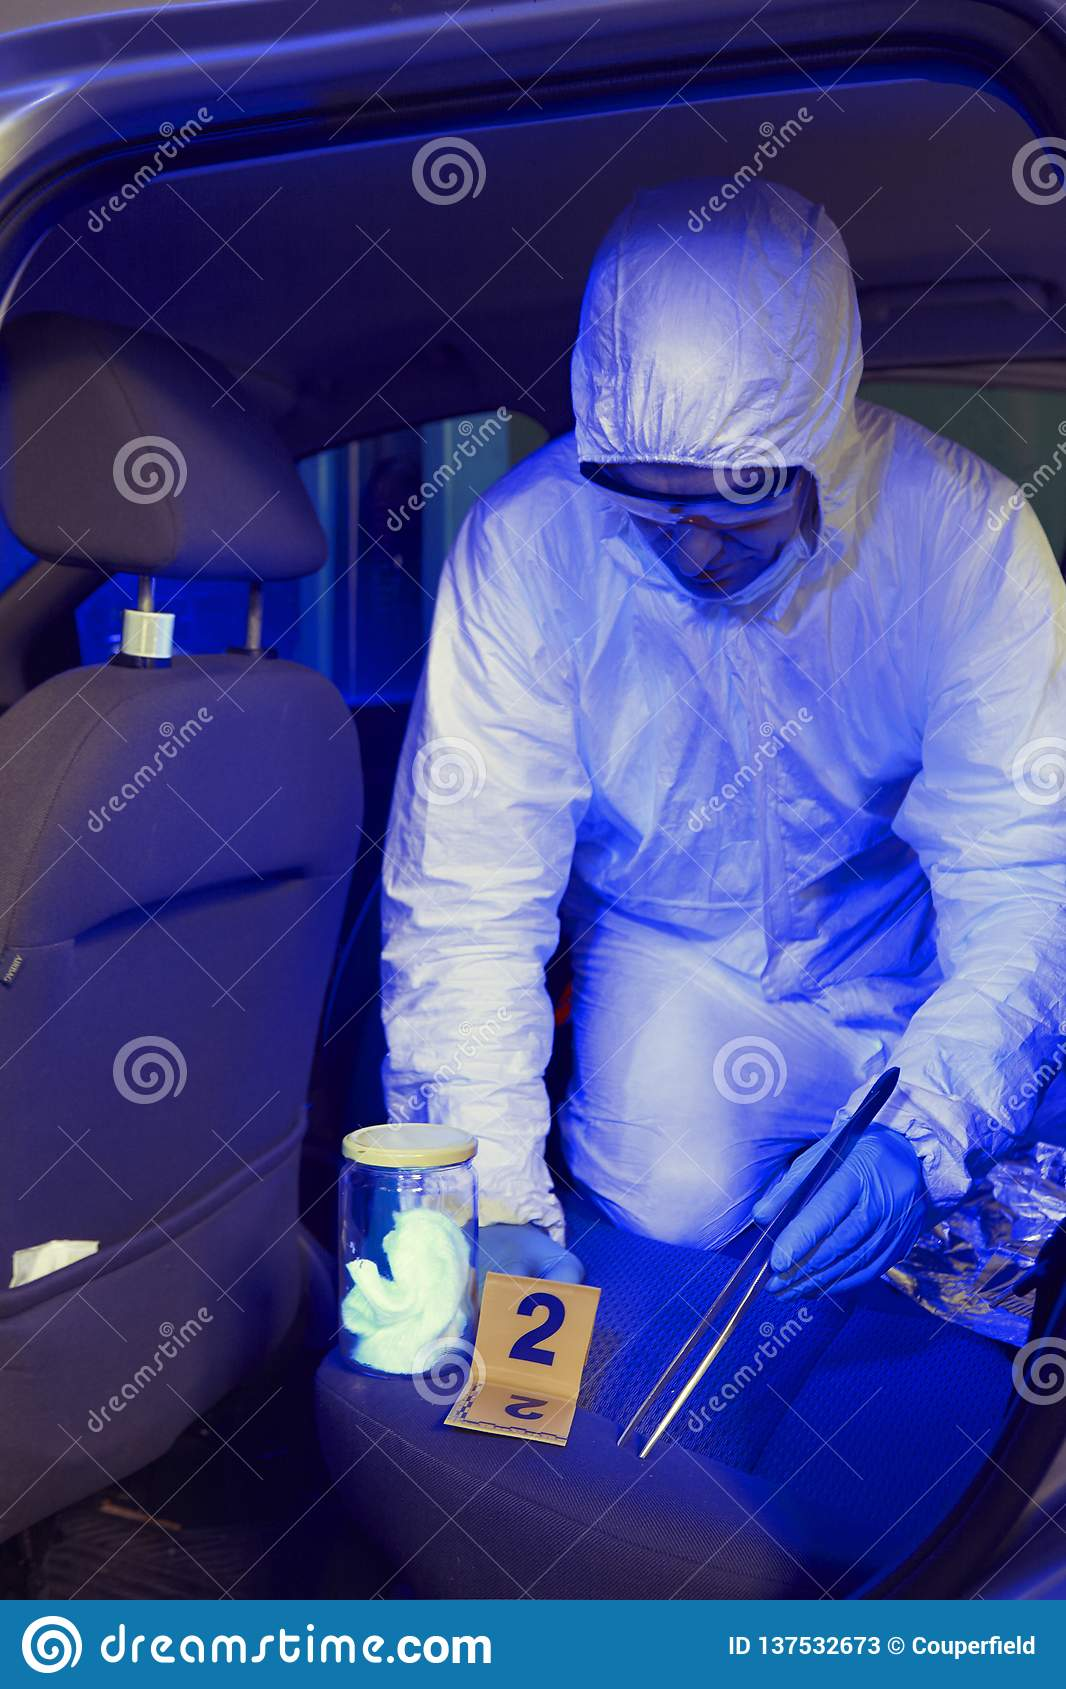 Police team working in ultraviolet light on collecting of traces and evidences